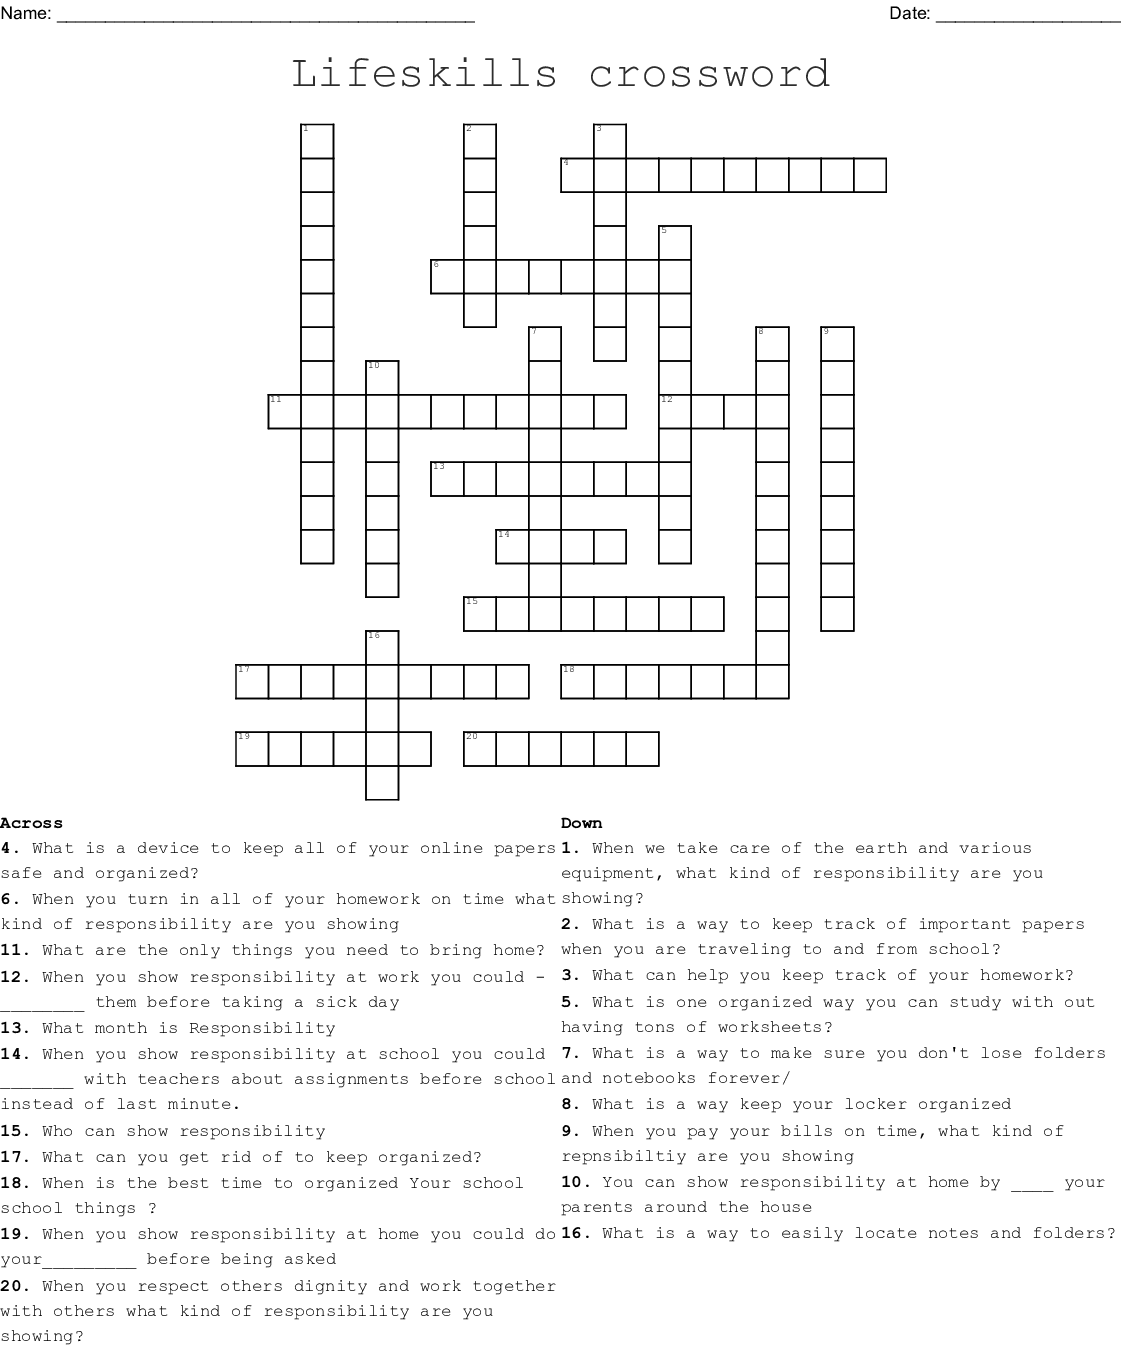 Coping Skills Crossword